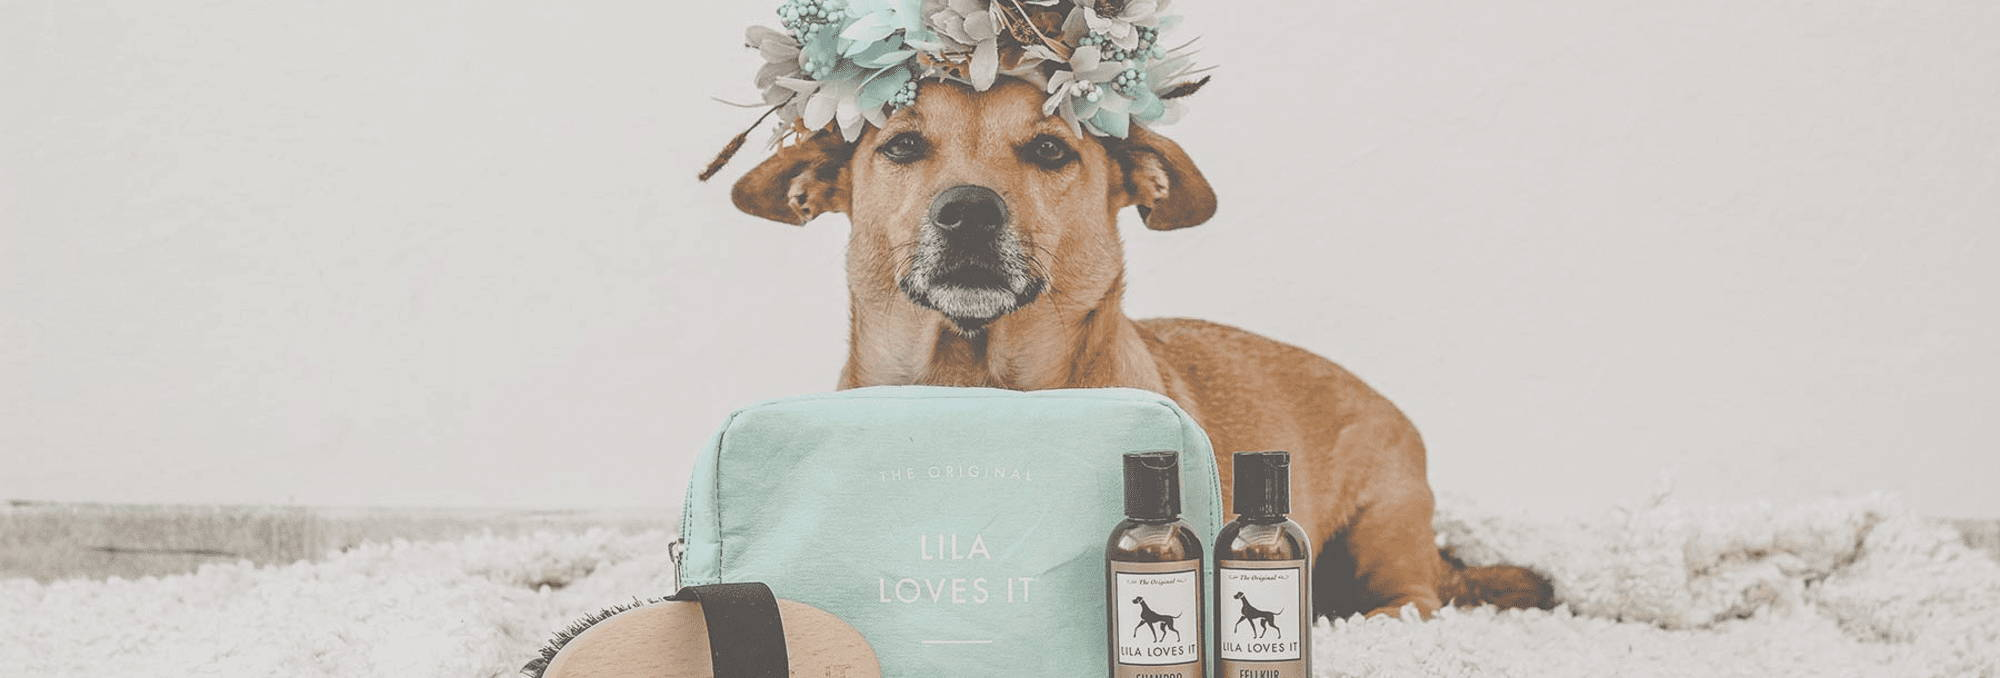 inooko-laver-chien-bain-shampoing-lila-loves-it